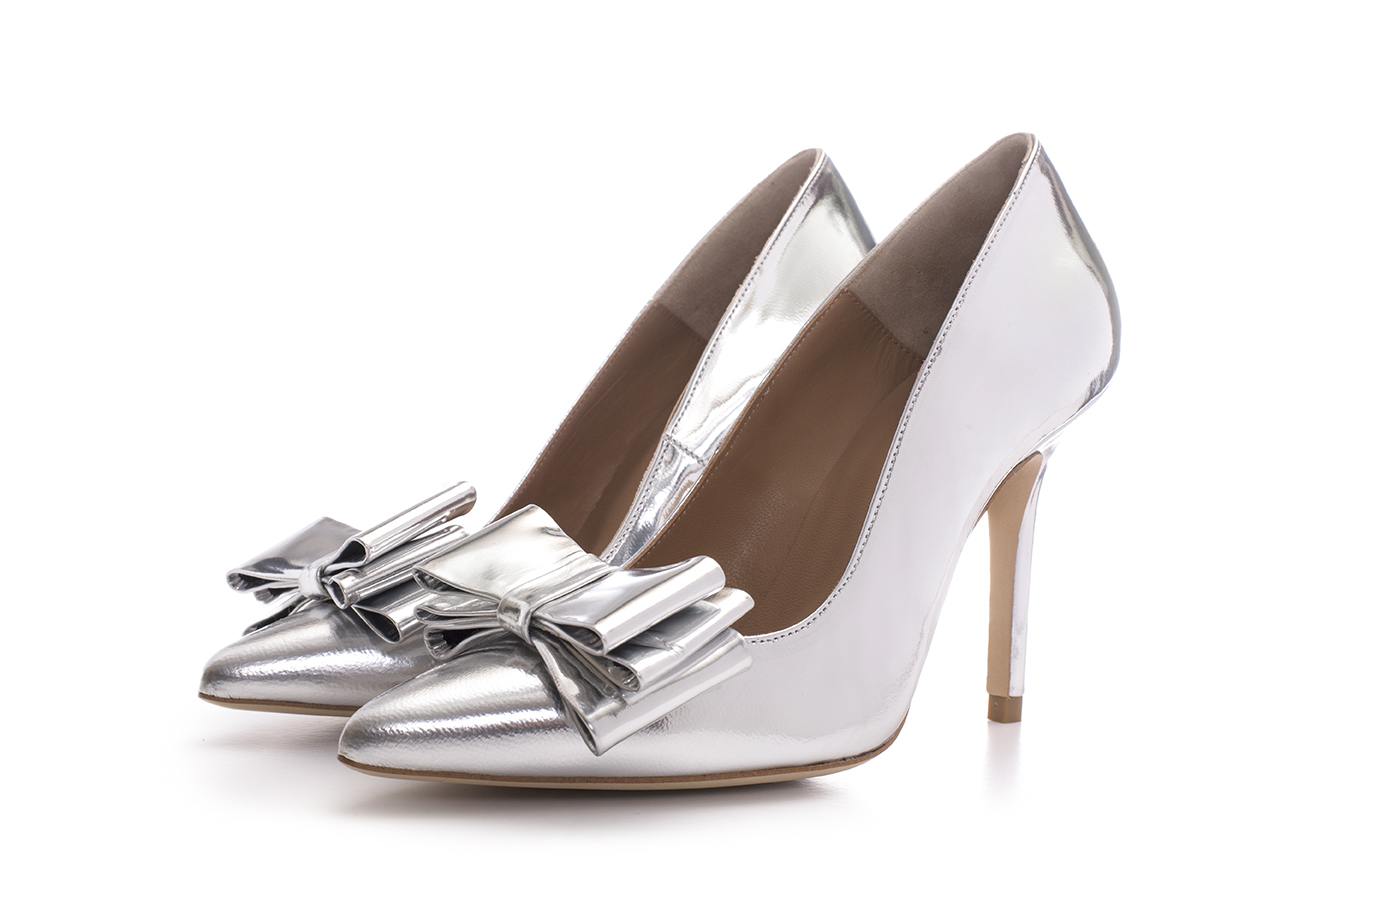 silver-shoes-bows.jpg